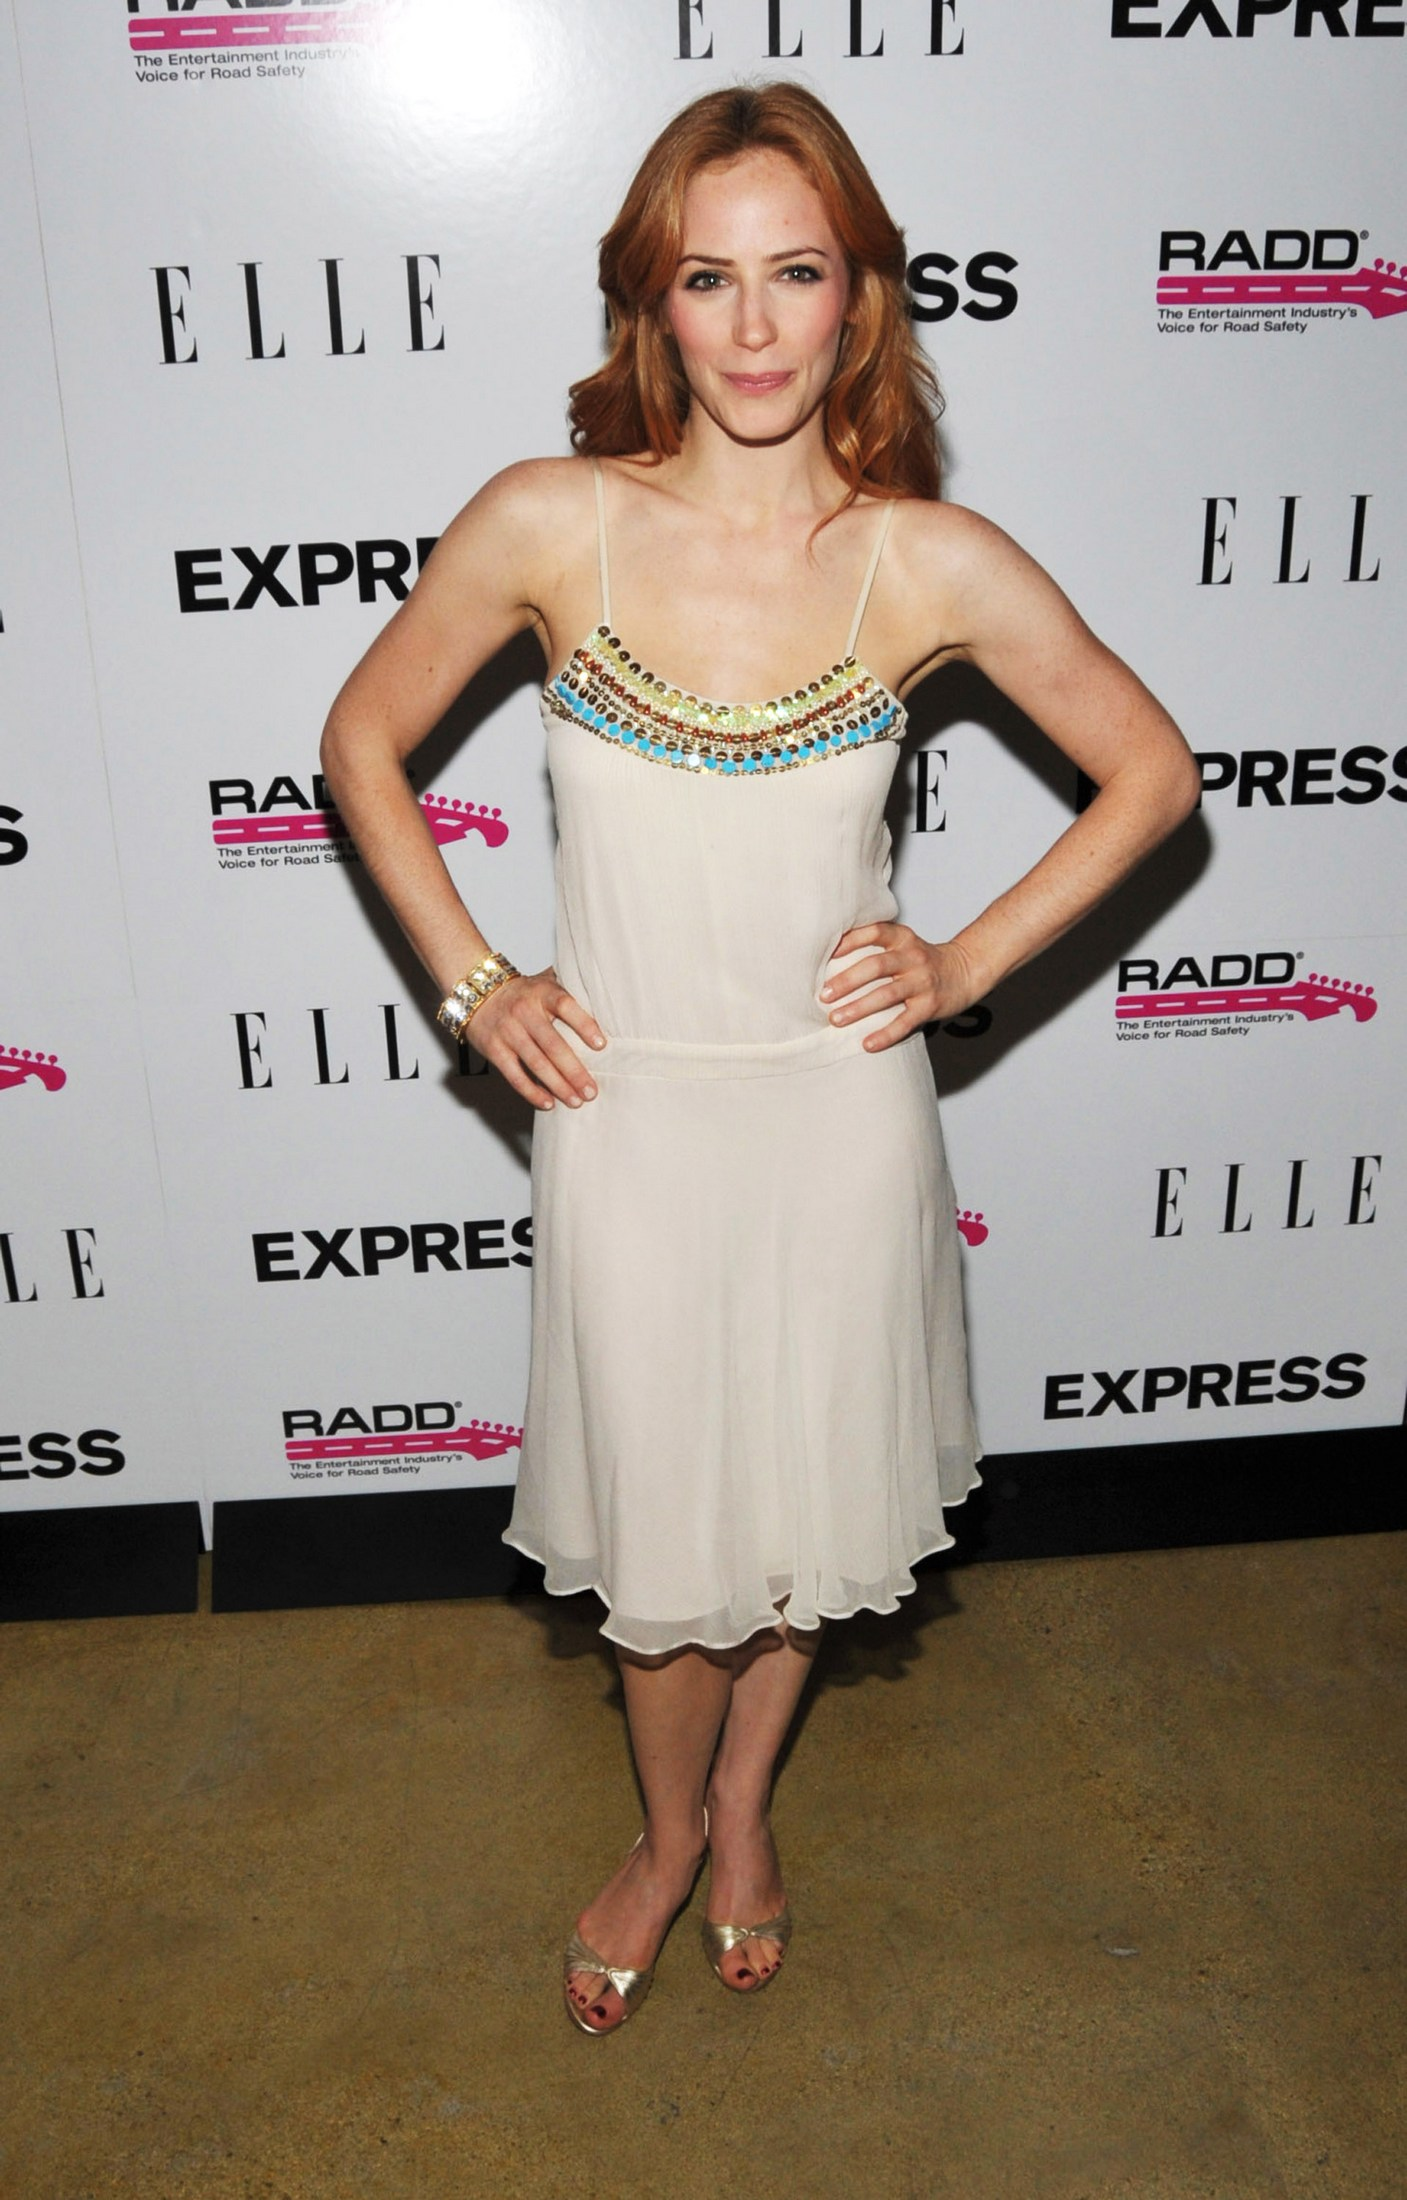 Feet Jaime Ray Newman nudes (75 photo) Hot, Instagram, cleavage